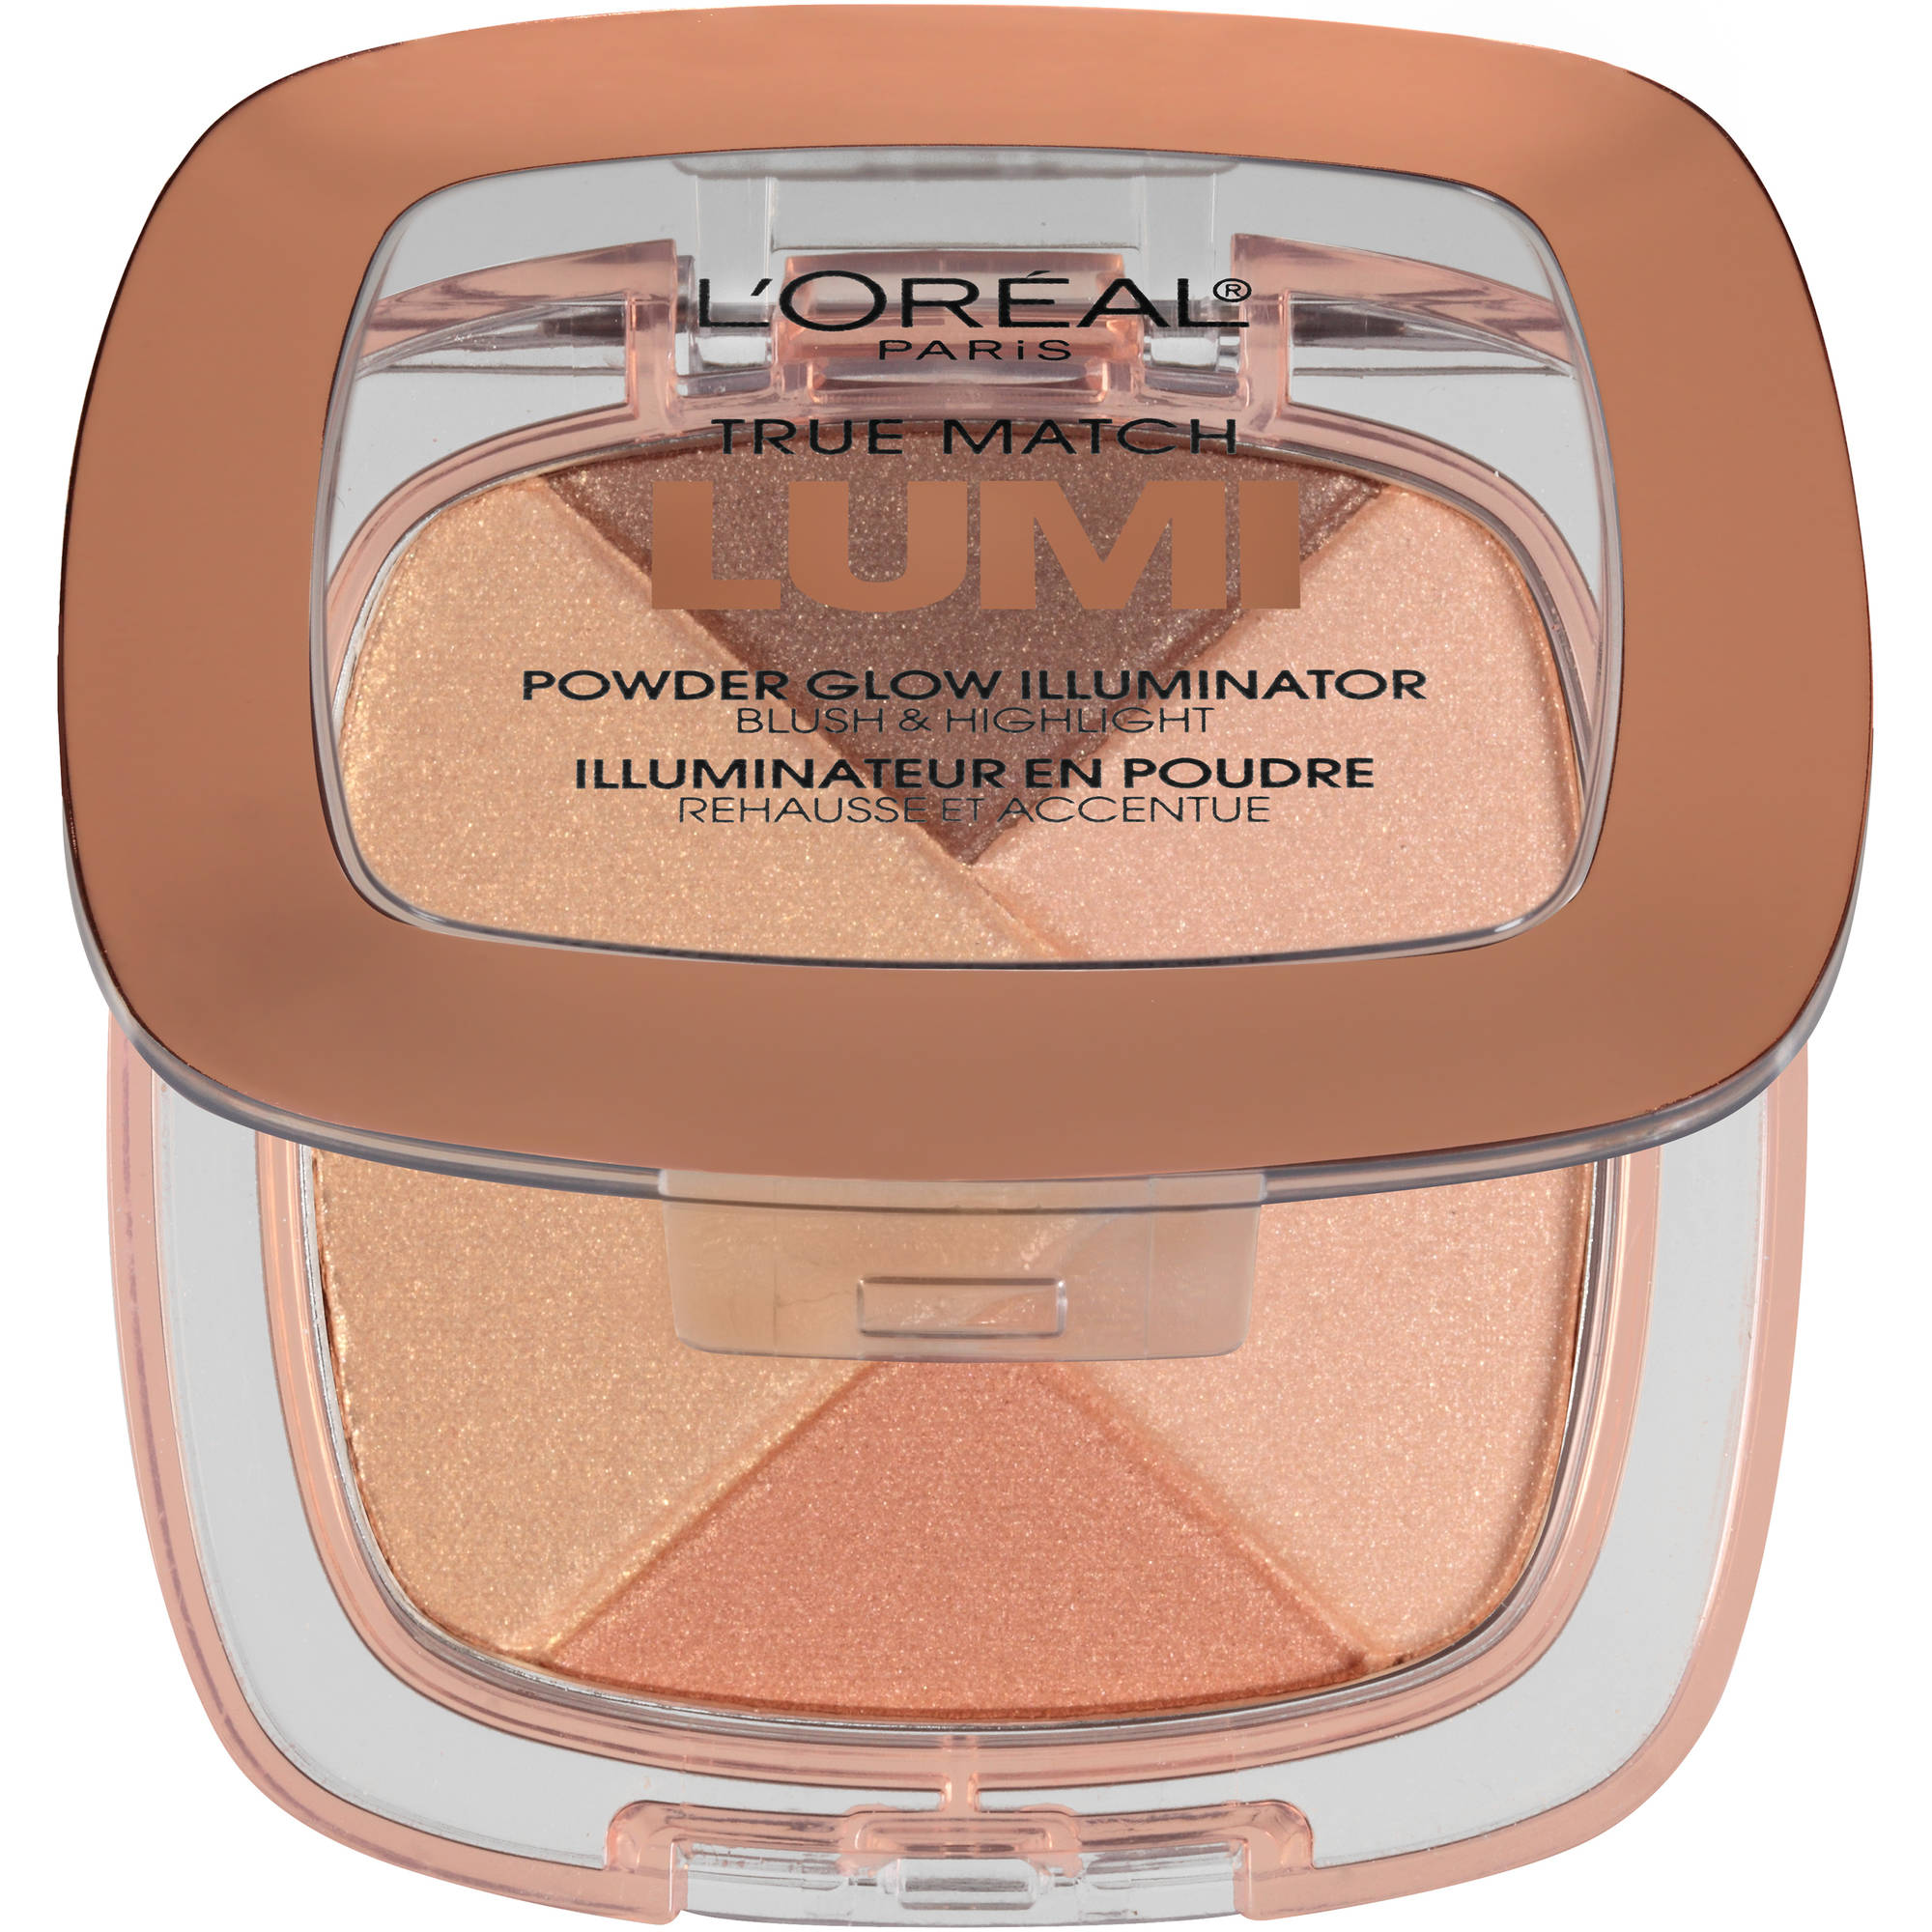 L'Oreal Paris True Match Lumi Powder Glow Illuminator, C302 Ice, 0.31 oz